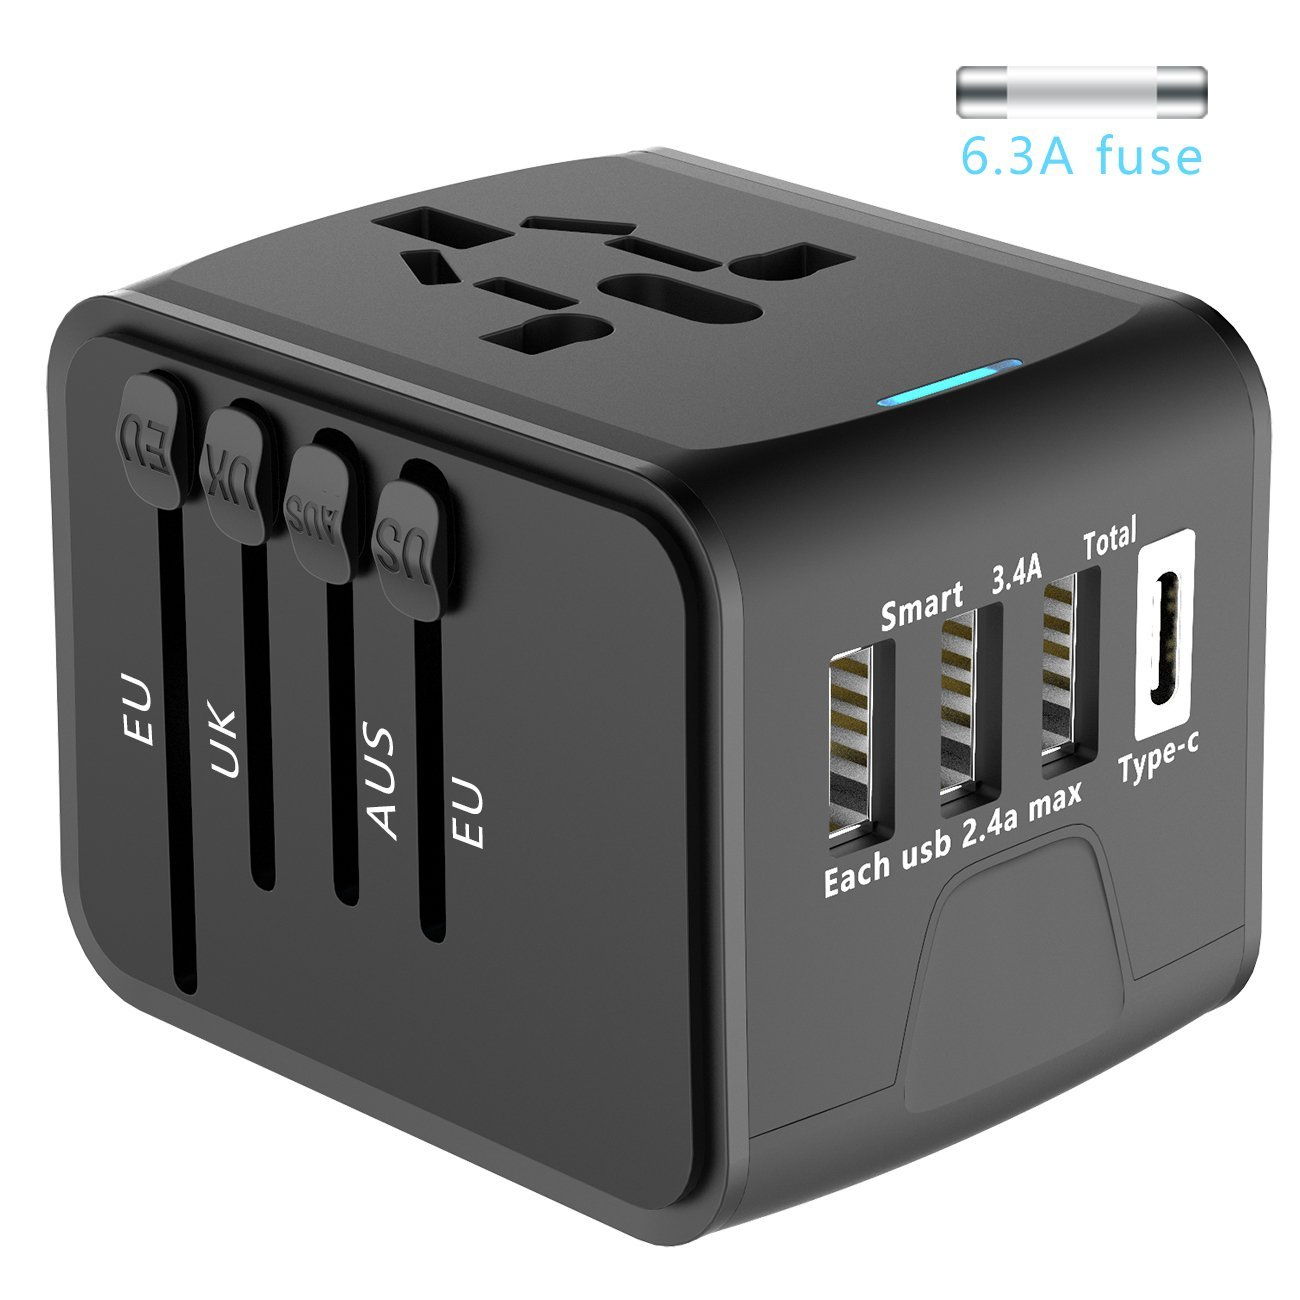 Cheap Travel Adapter With Fuse, find Travel Adapter With Fuse deals on